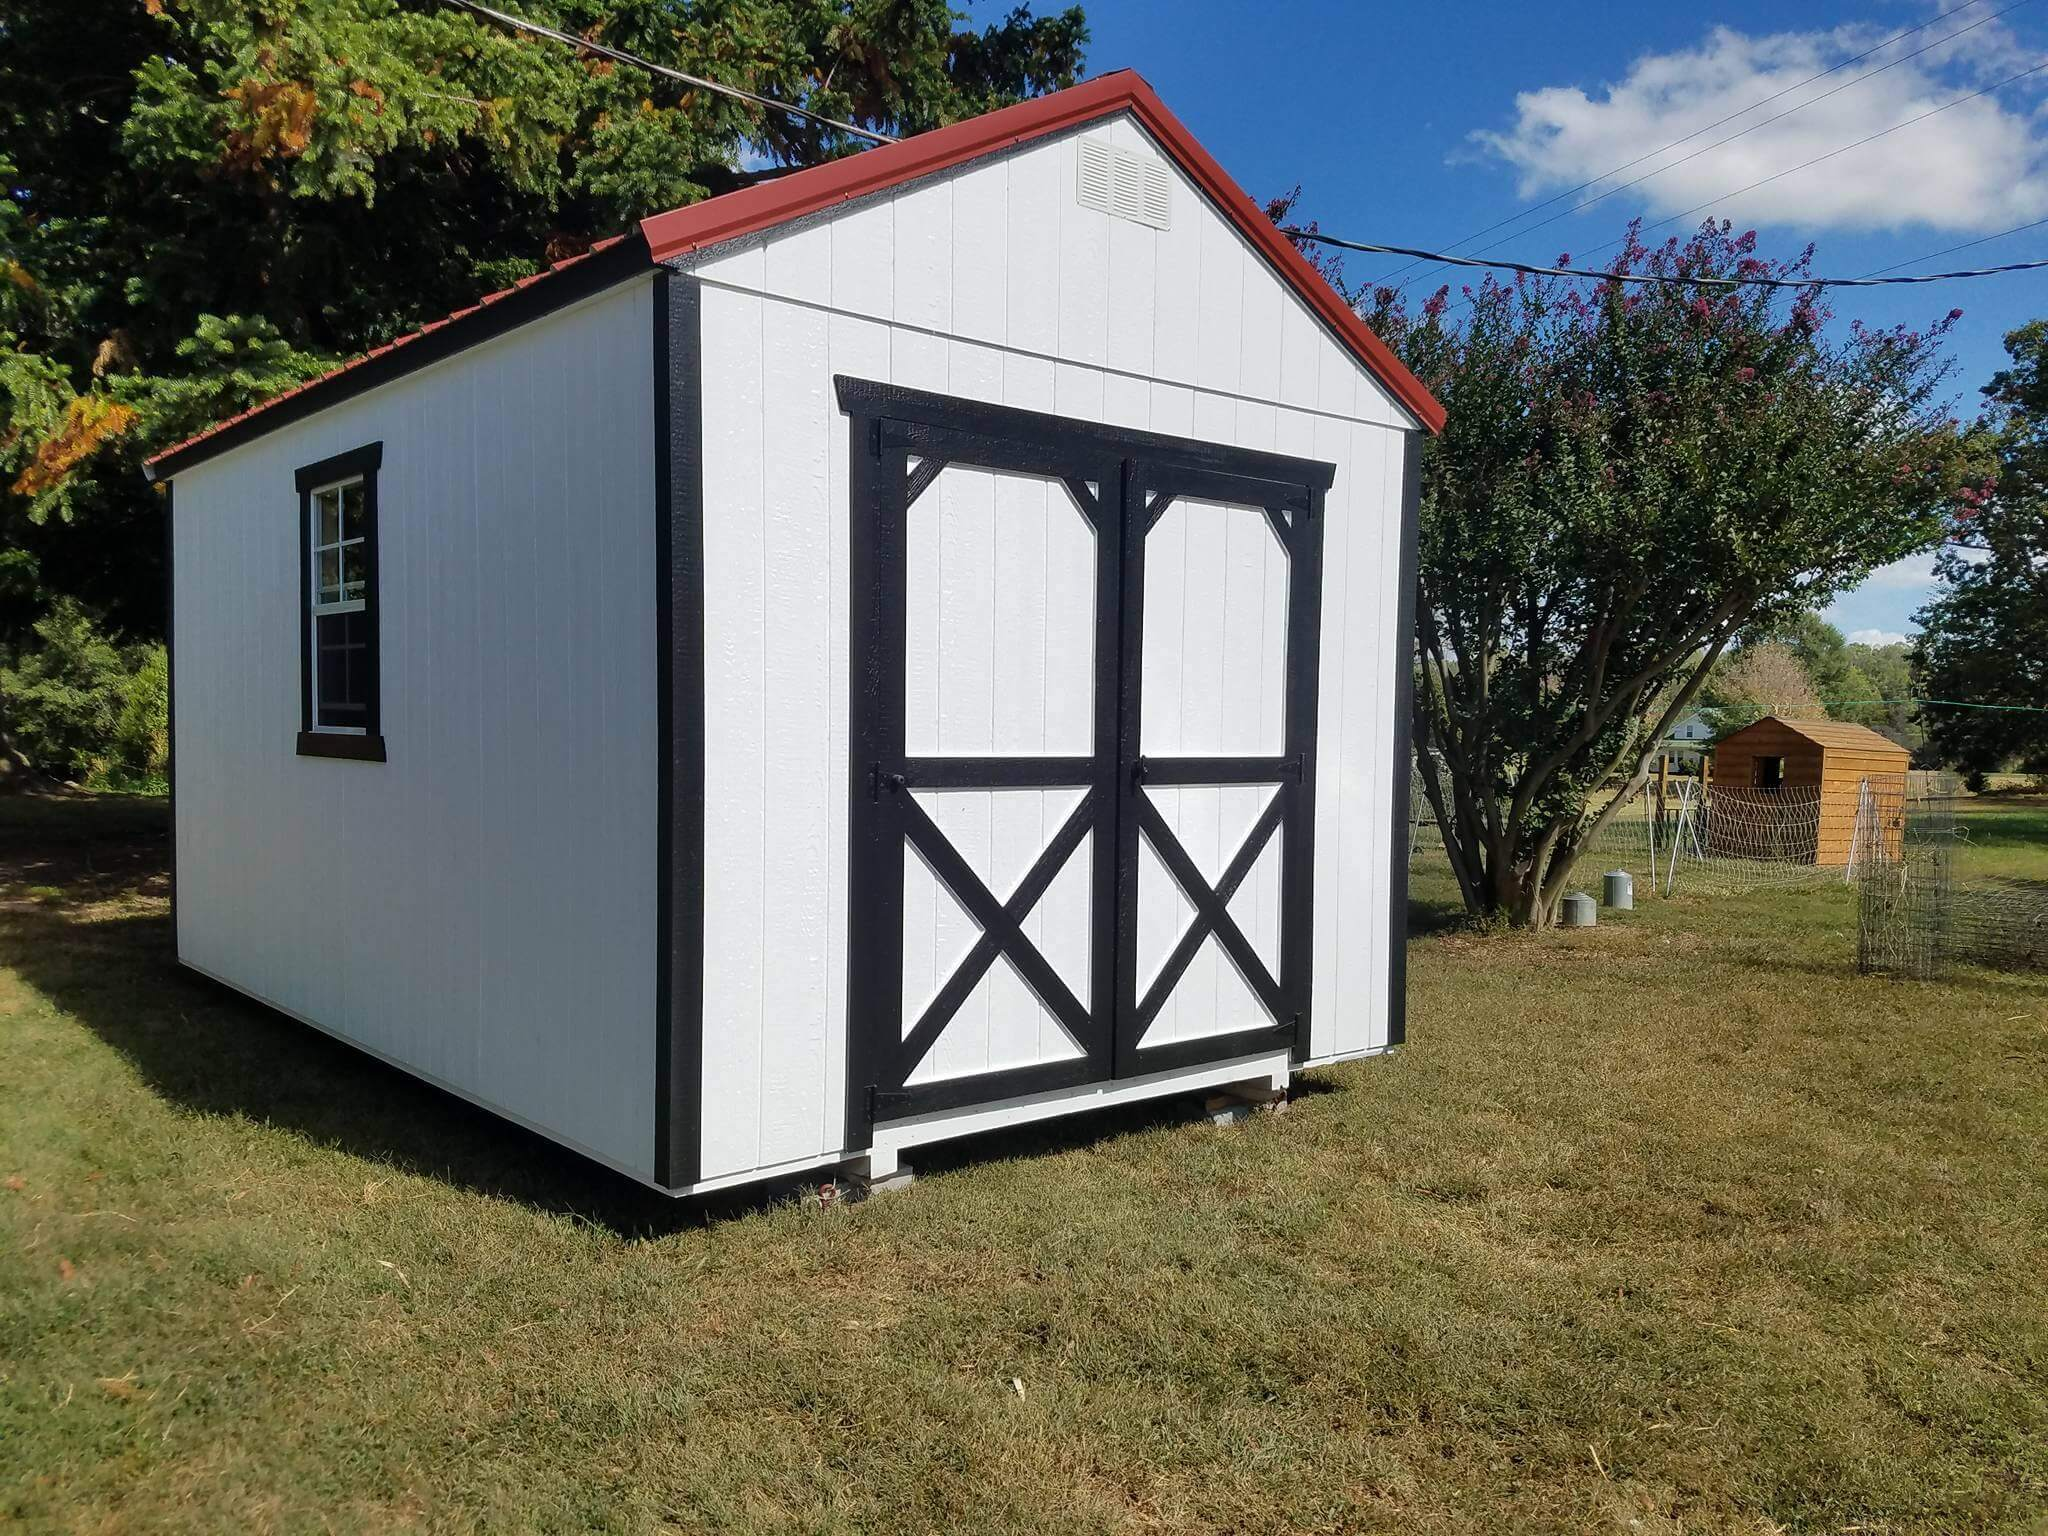 208-painted-utility-shed-with-red-roof.jpg